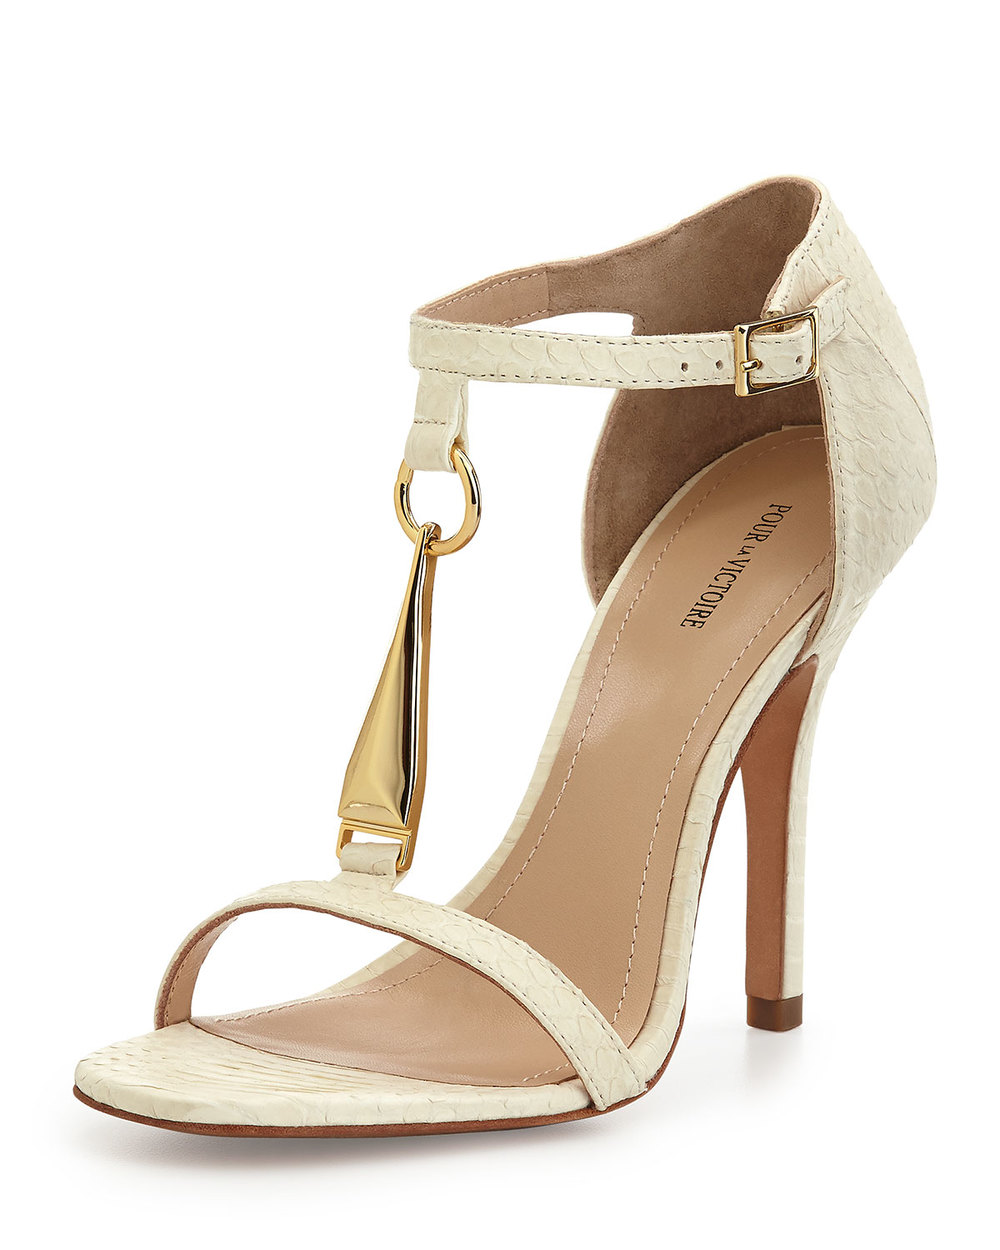 POUR LA VICTOIRE YOLANDA GOLDEN T-STRAP DRESS SANDAL, WHITE was @265 now $92.50